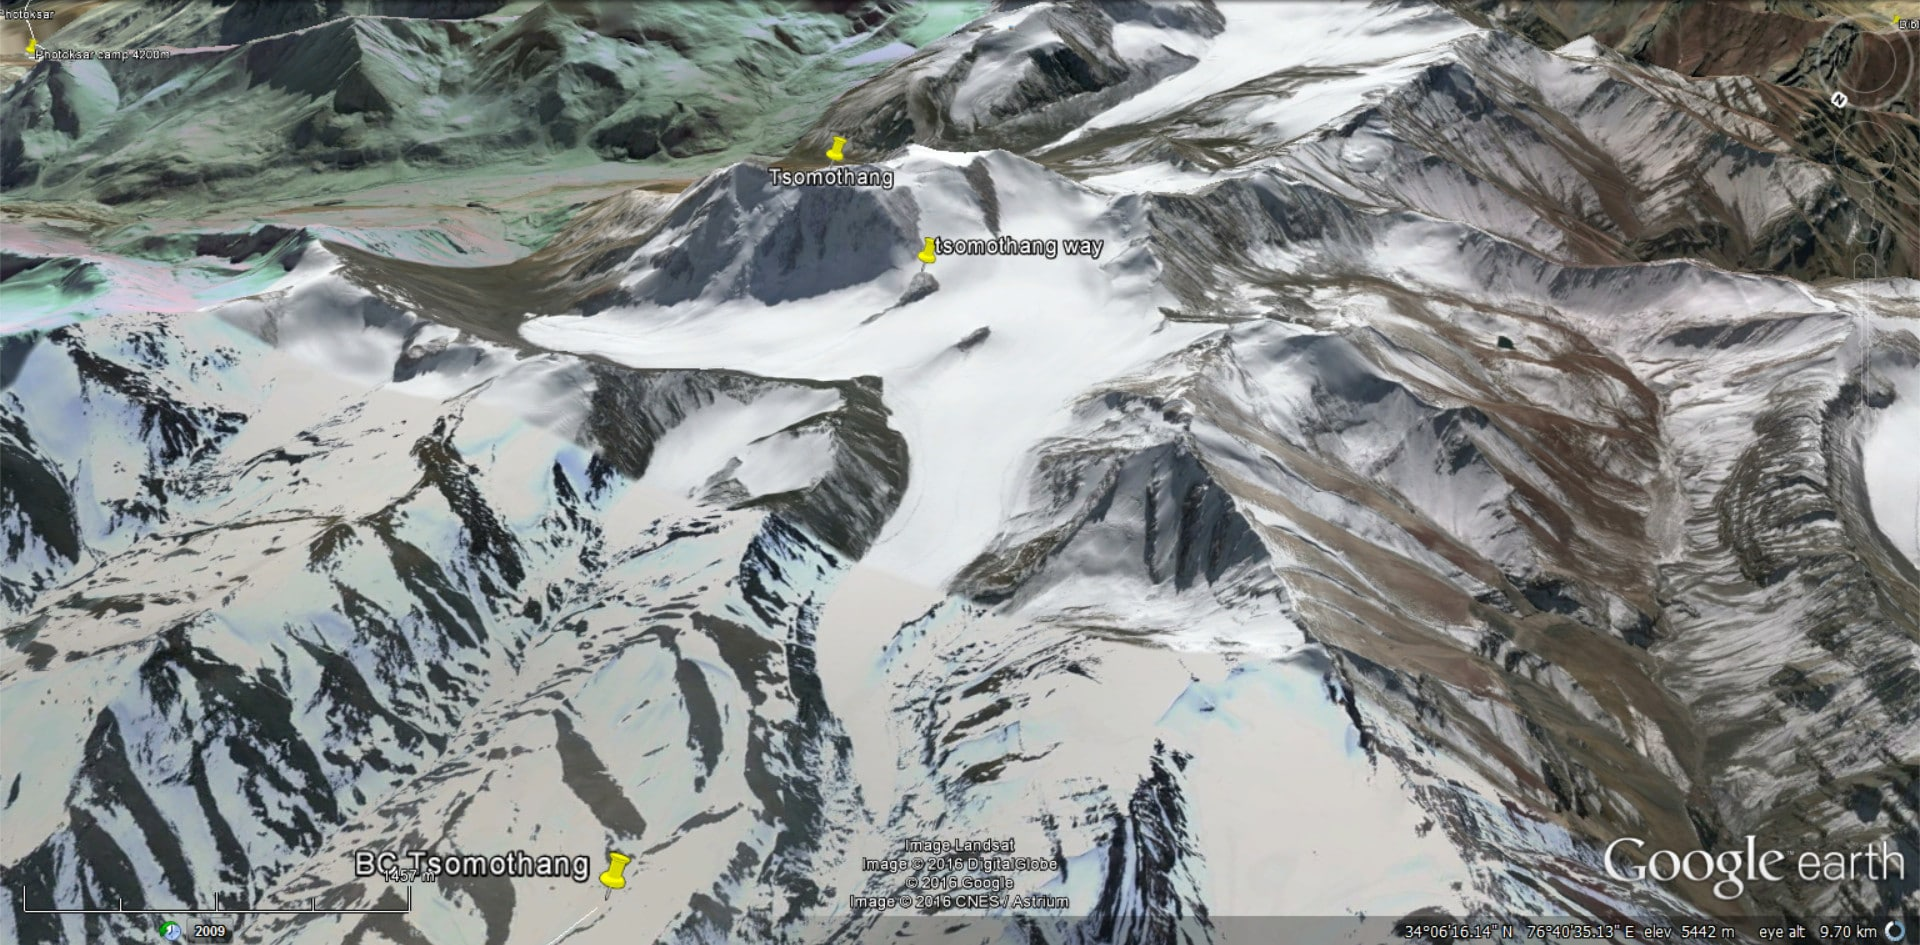 Tsomothang on Google Earth